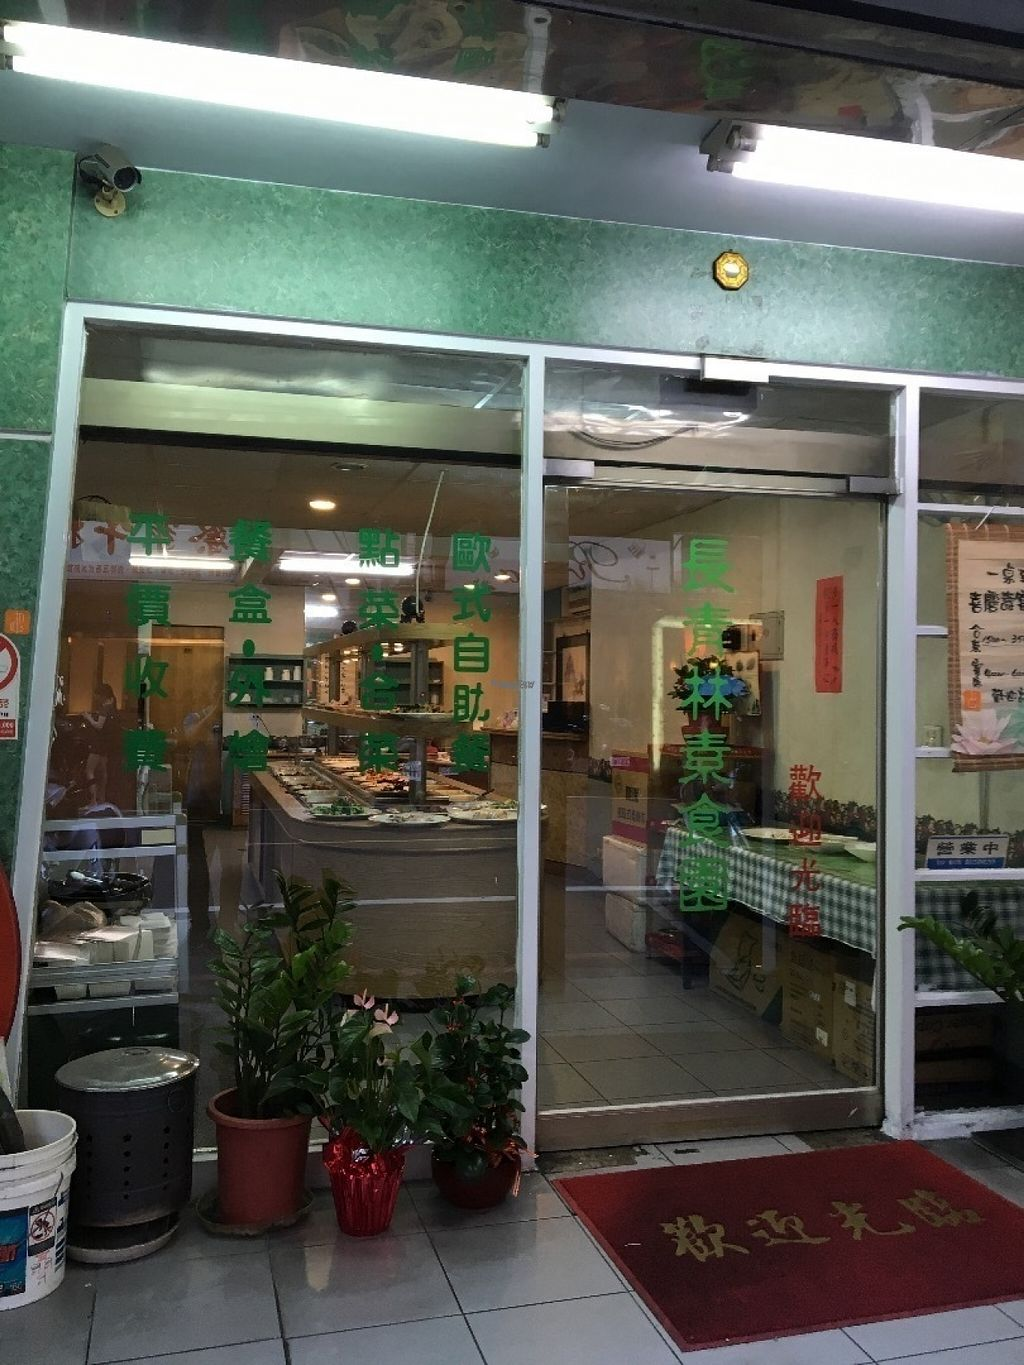 """Photo of Green Garden Vegetarian  by <a href=""""/members/profile/phillipguy"""">phillipguy</a> <br/>Entrance <br/> August 14, 2016  - <a href='/contact/abuse/image/78578/168435'>Report</a>"""